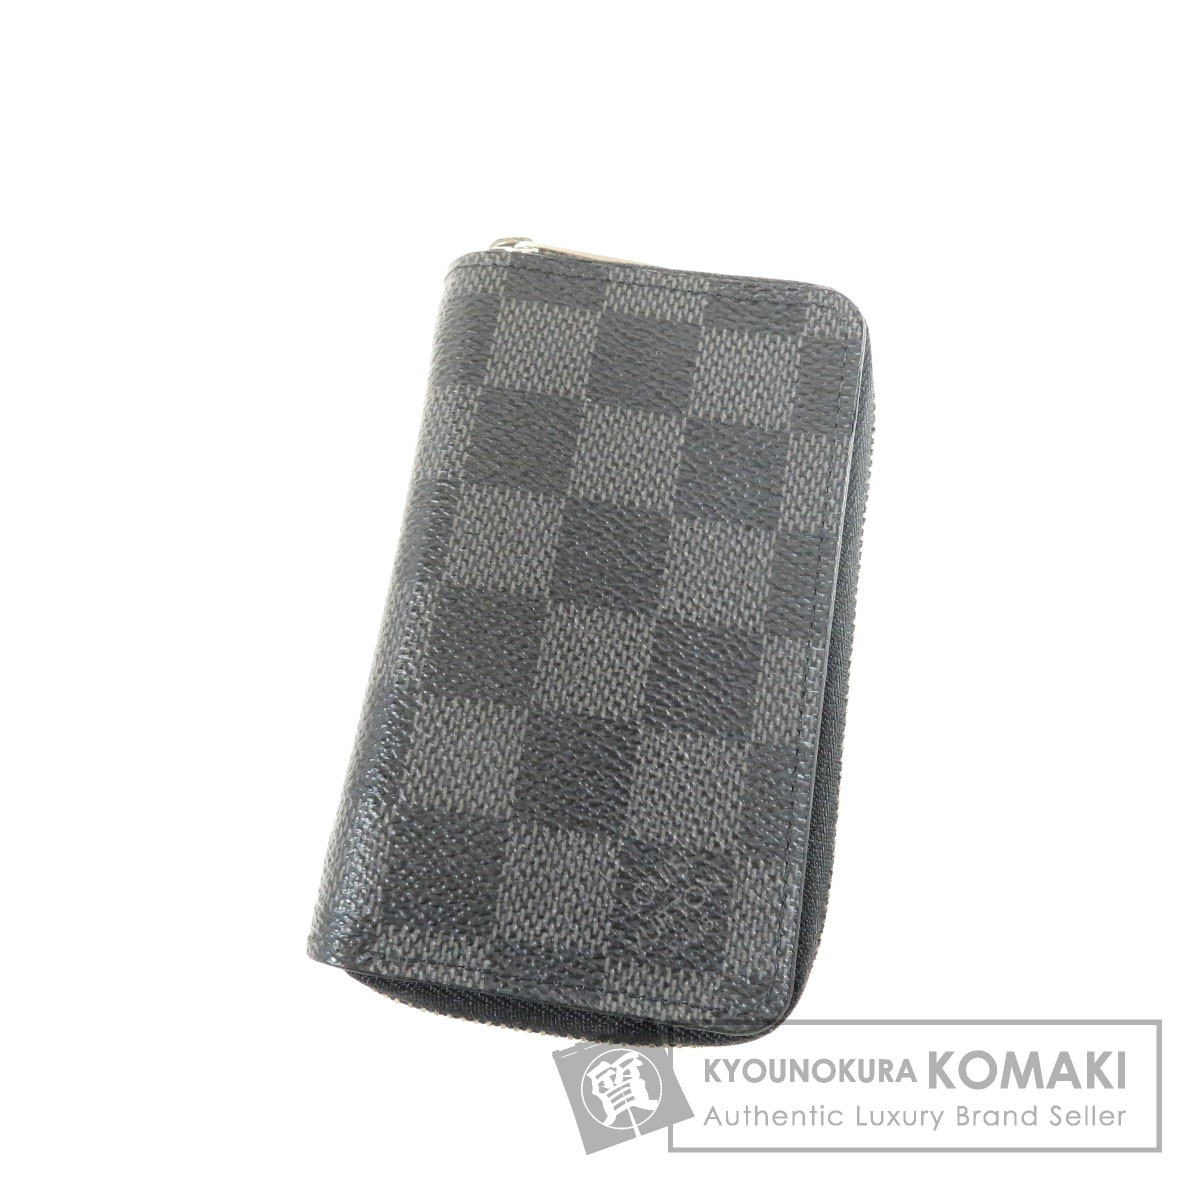 dbc07a4eb365 LOUIS VUITTON ルイヴィトン N63076 ジッピーコインパース コインケース ルイヴィトン N63076 ジッピーコインパース ...